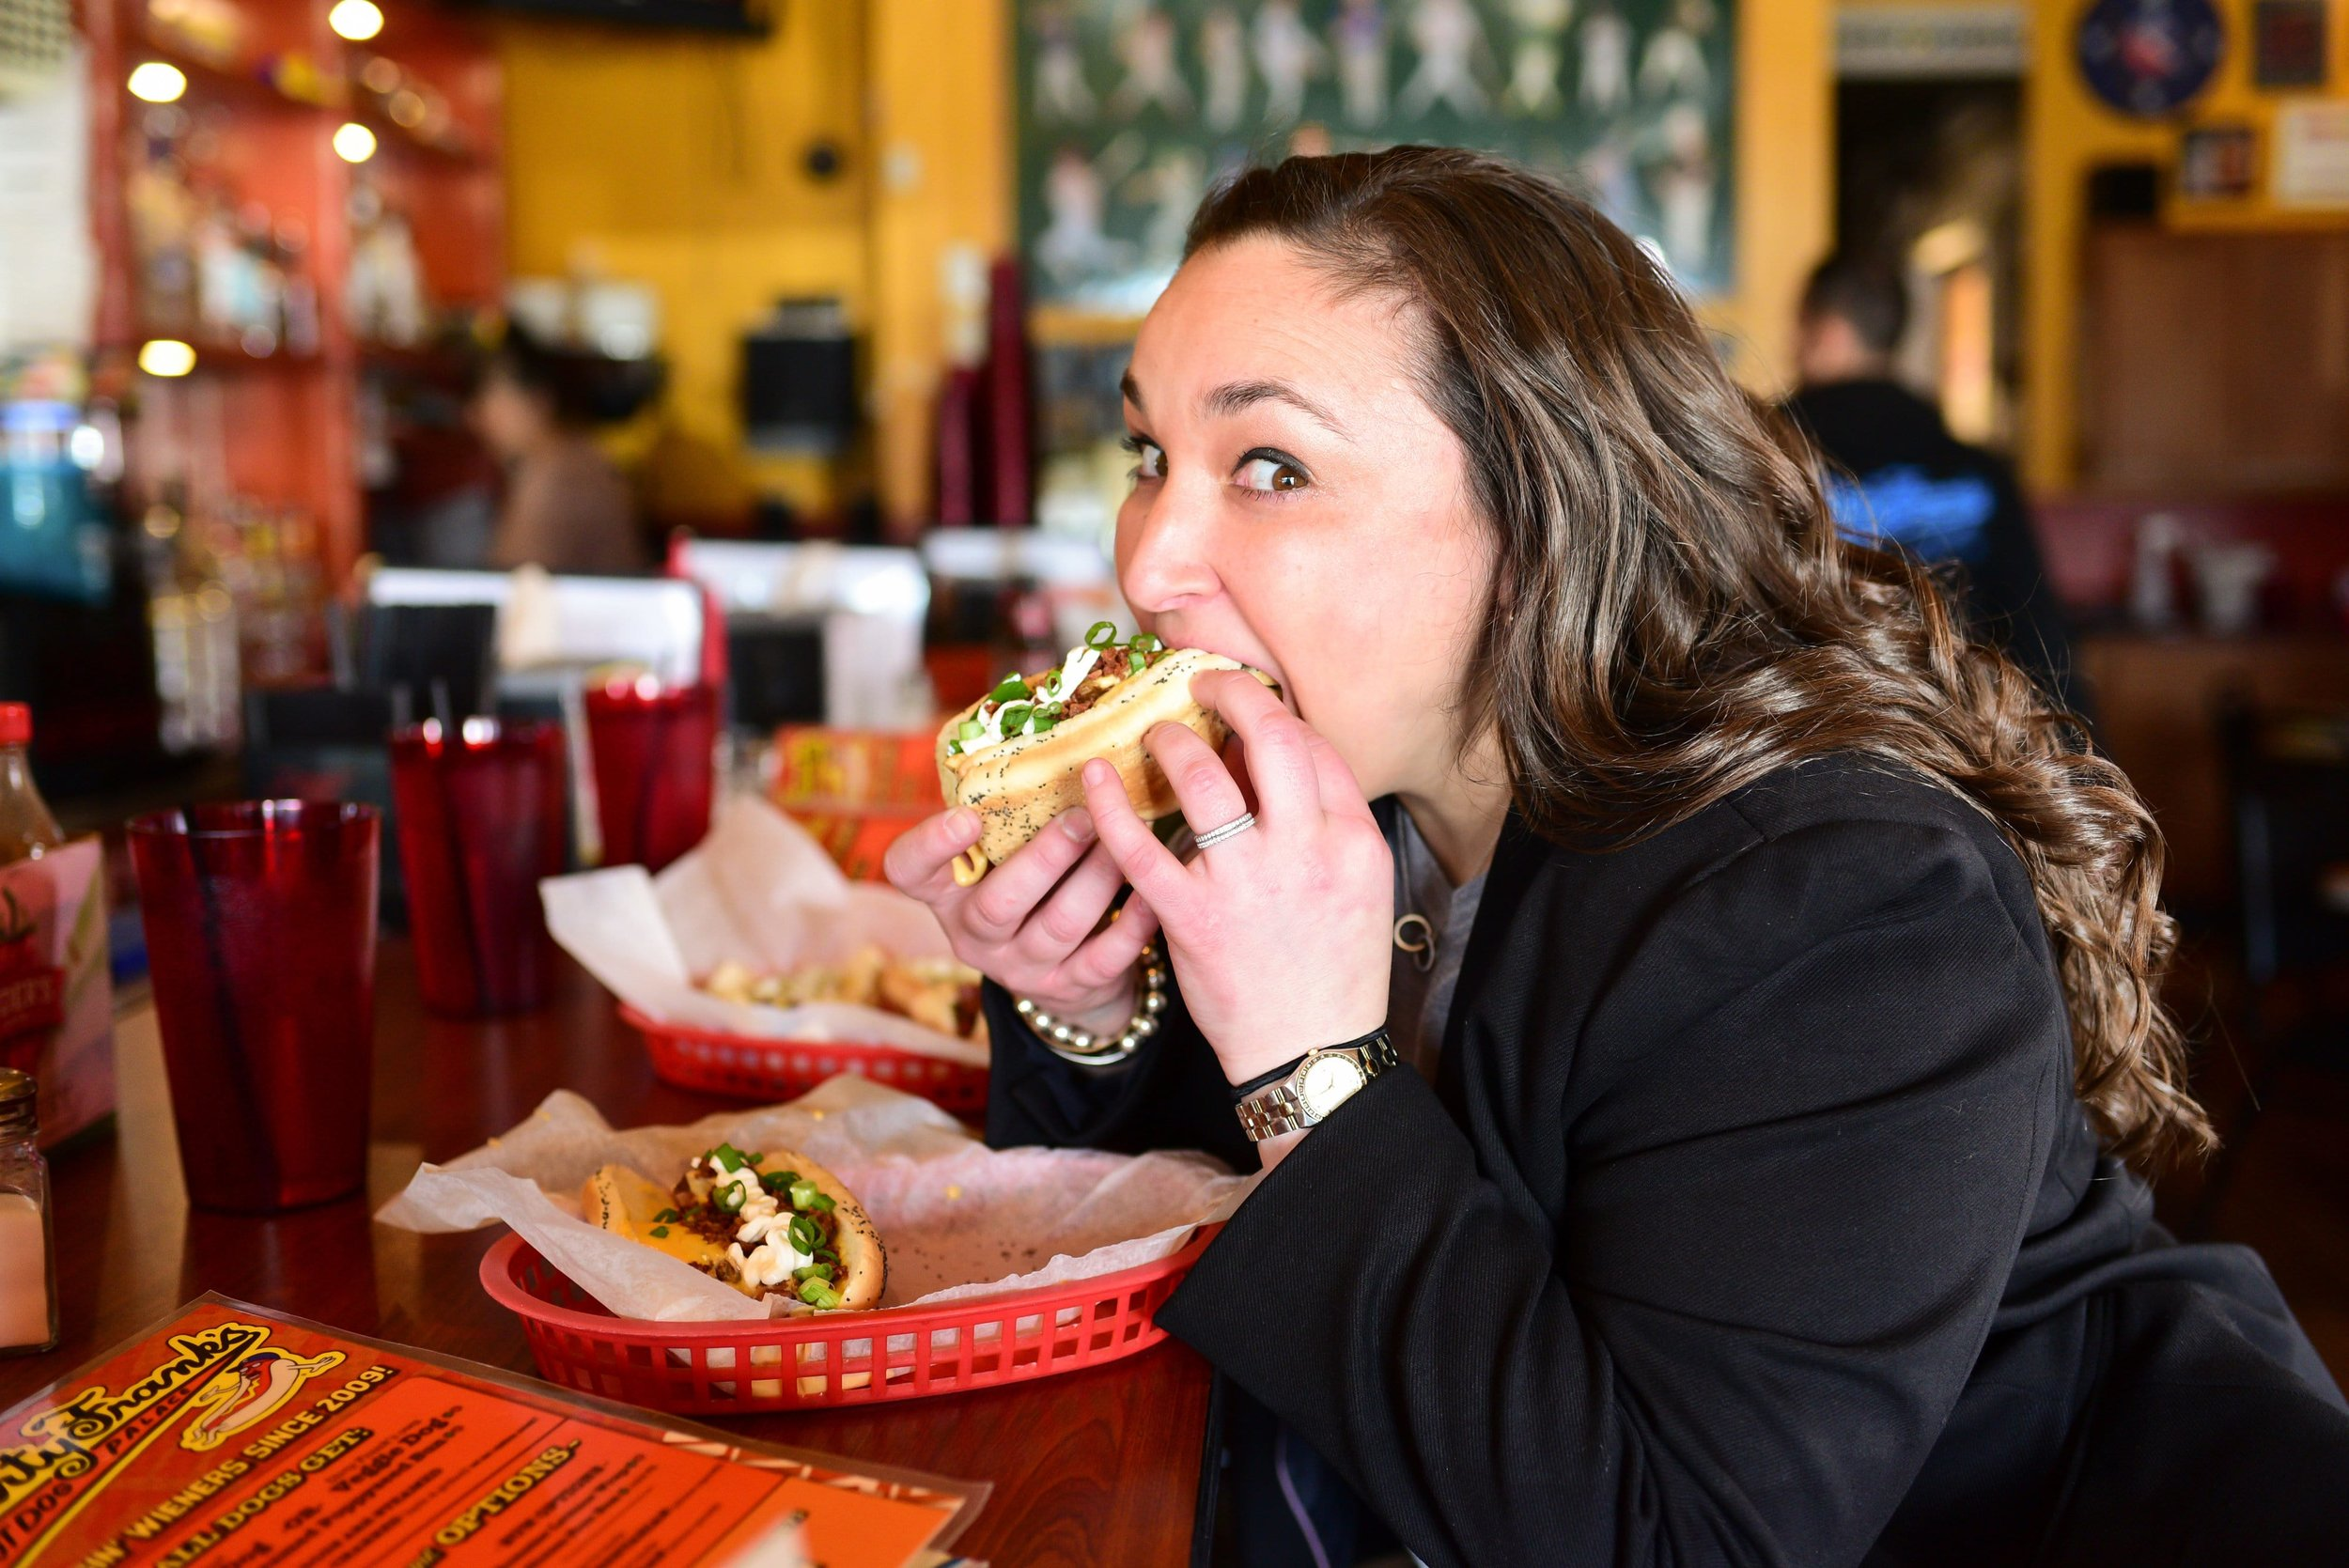 Tanya grabbing a bite of Dirty Franks on set of our styled shoot in Columbus Ohio